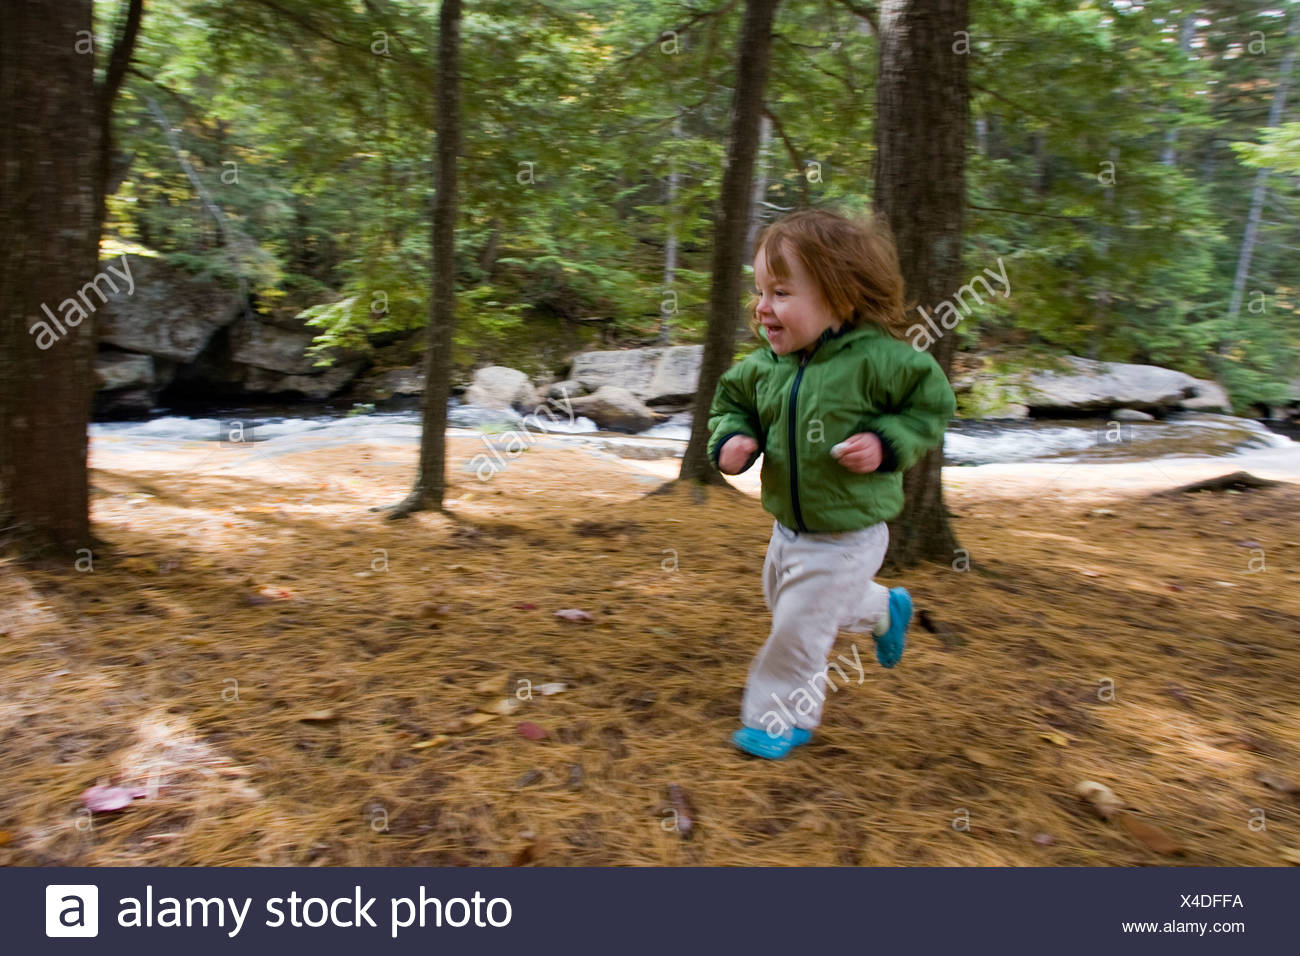 A young girl runs through the woods. - Stock Image